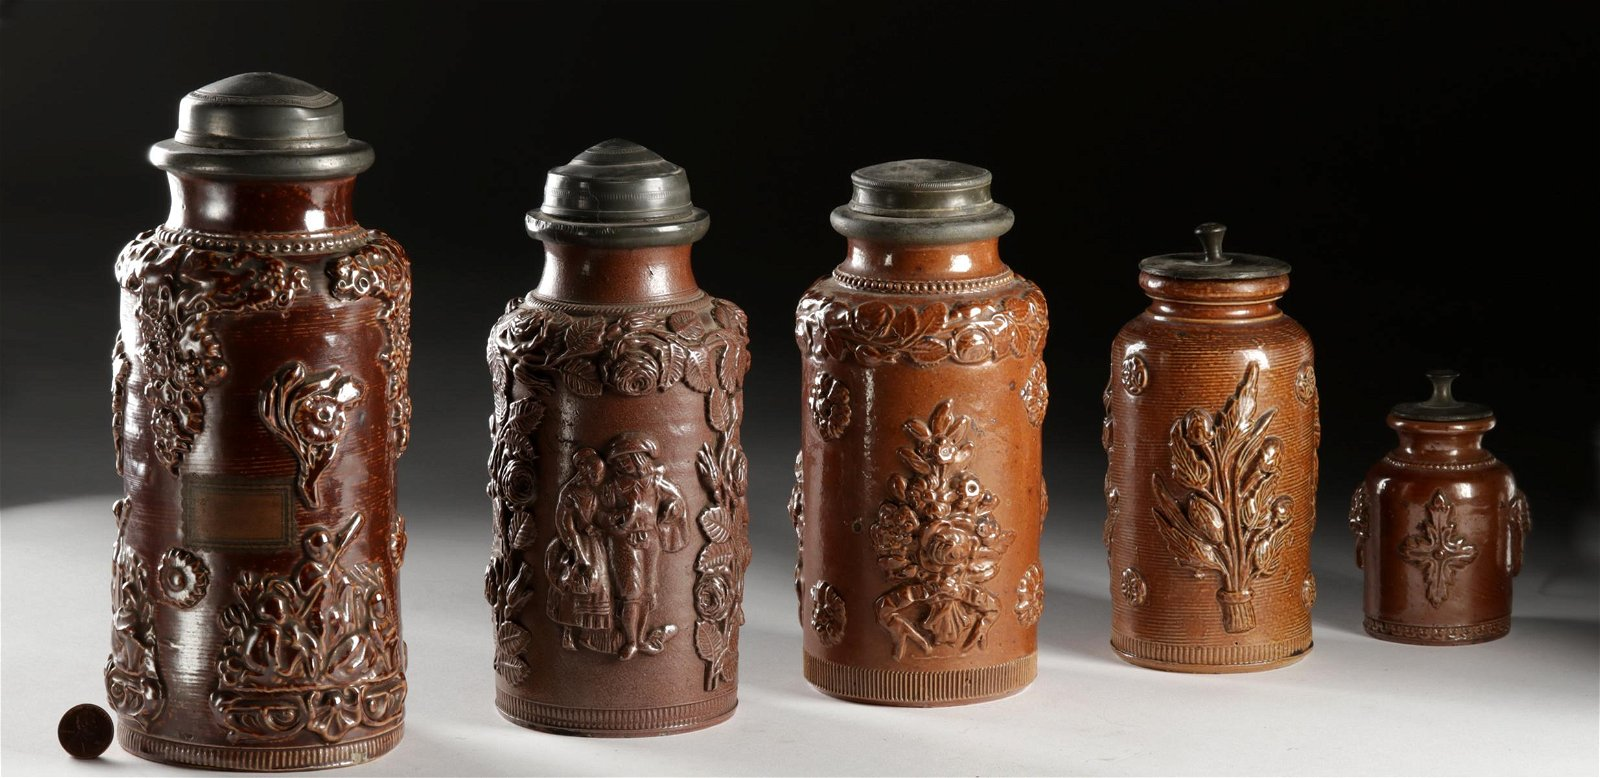 17th C. German Salt Glazed Stoneware Jars w/ Lids (5)